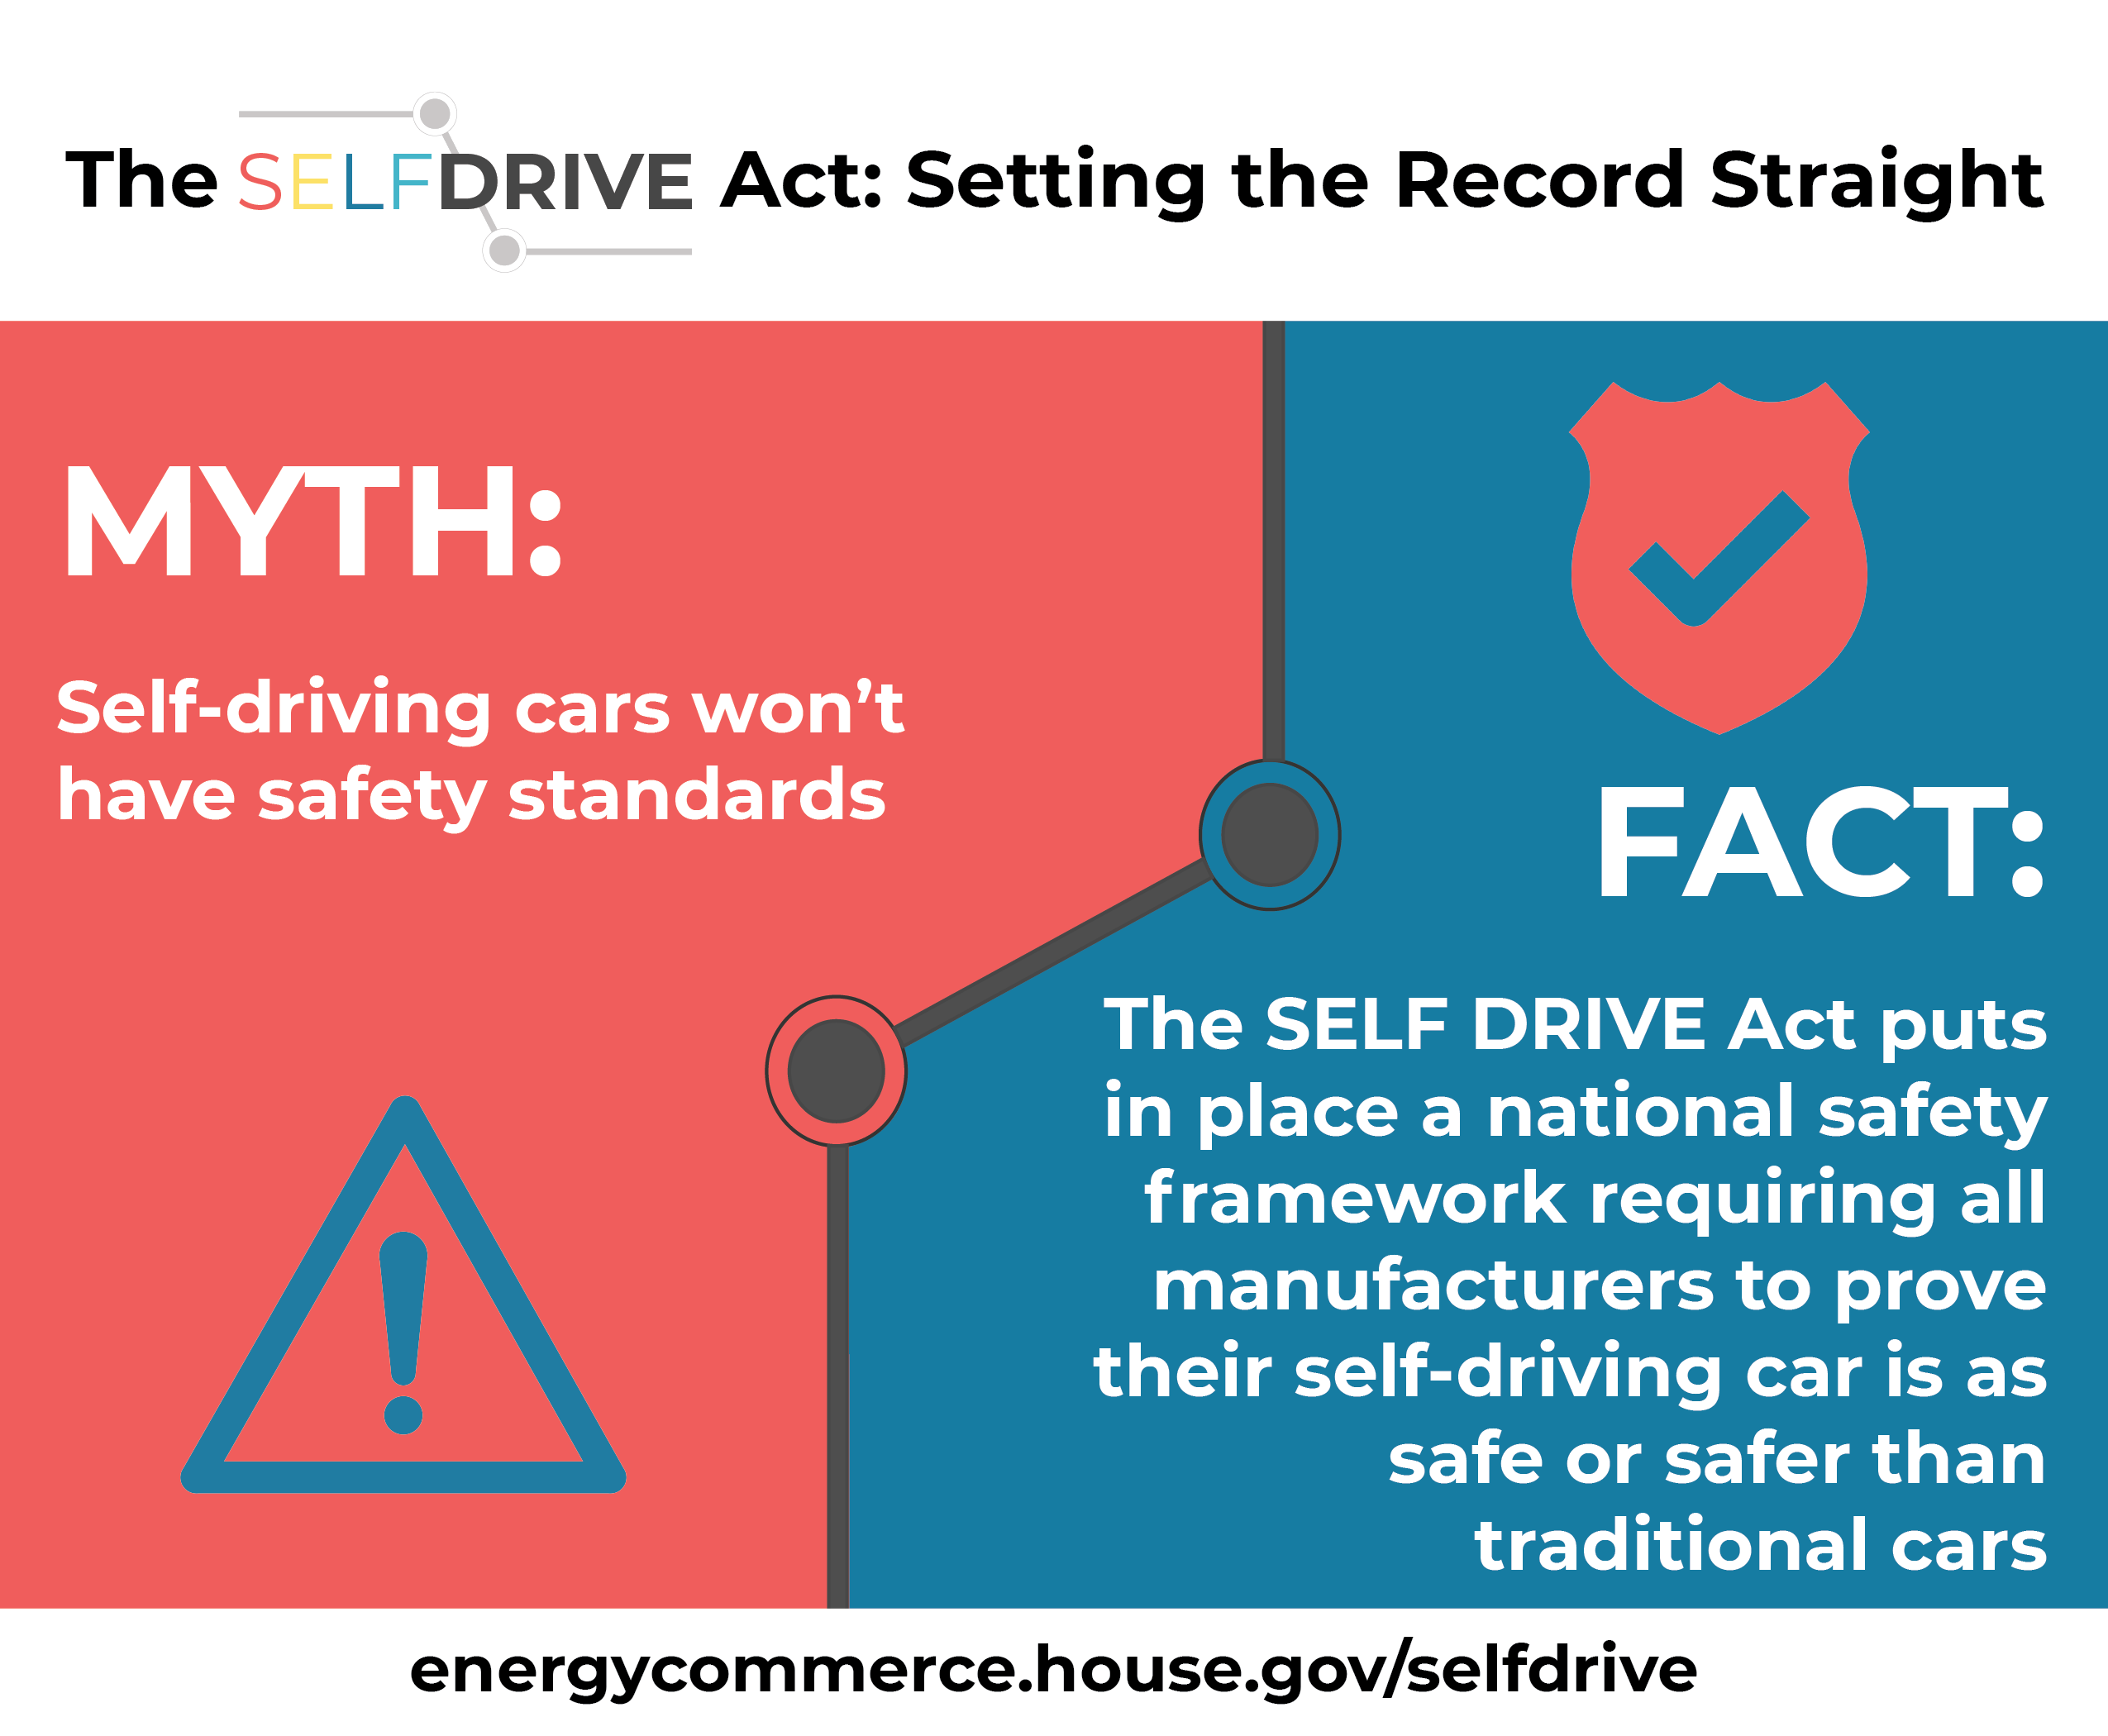 Safe Car Gov >> Self Drive Act Setting The Record Straight On Safety